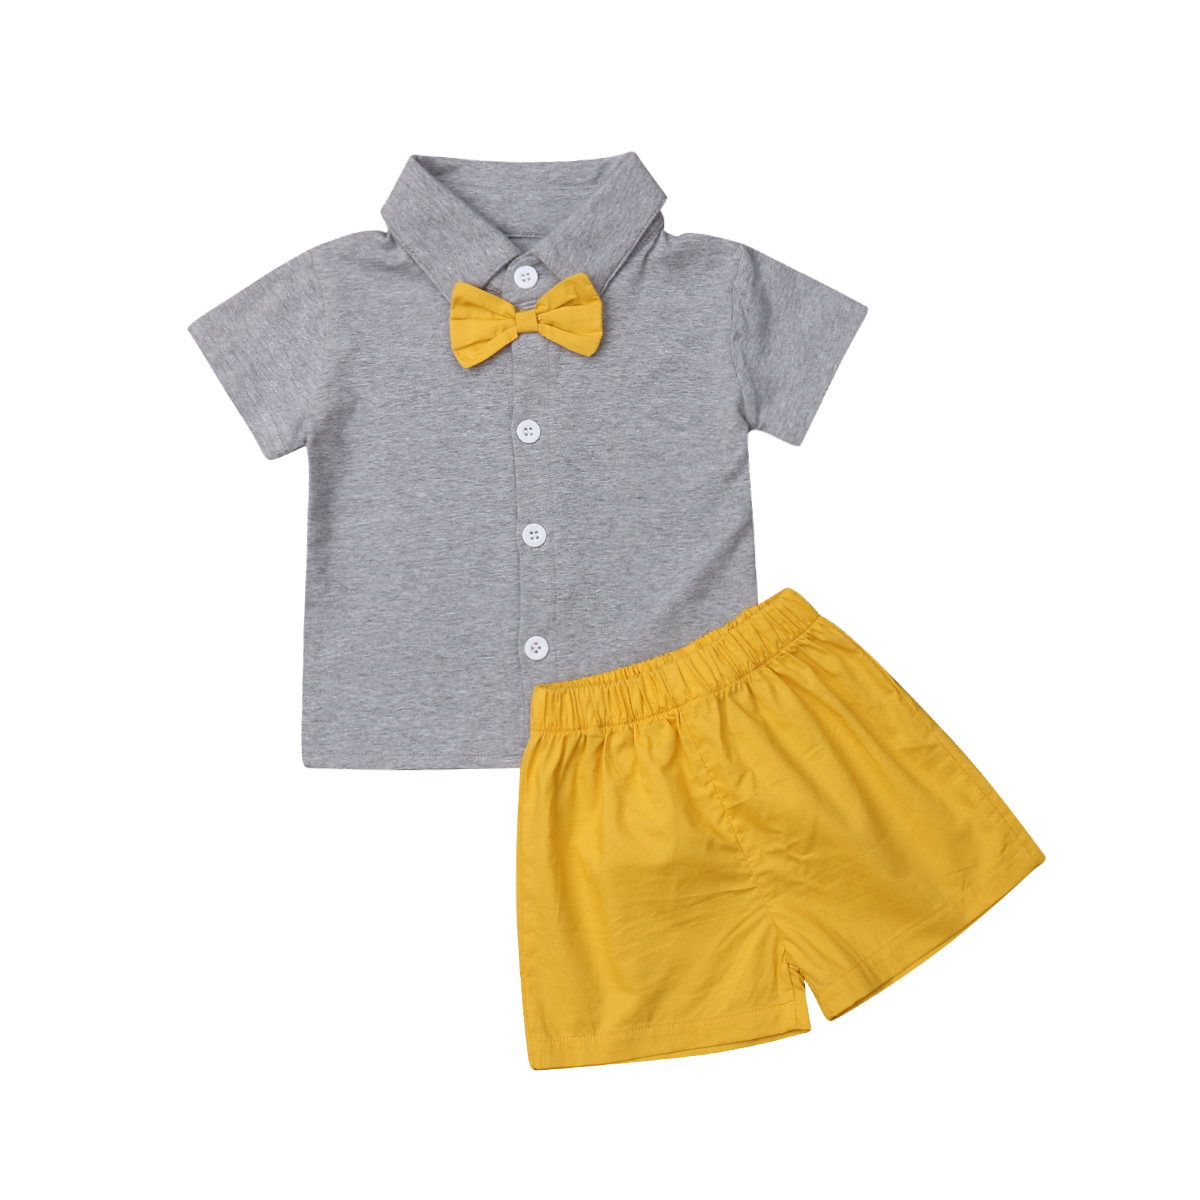 26e03af259 Kids Baby Big Little Sister Brother Clothes Sets Tops T-shirt Short Sleeve  Shorts Bow